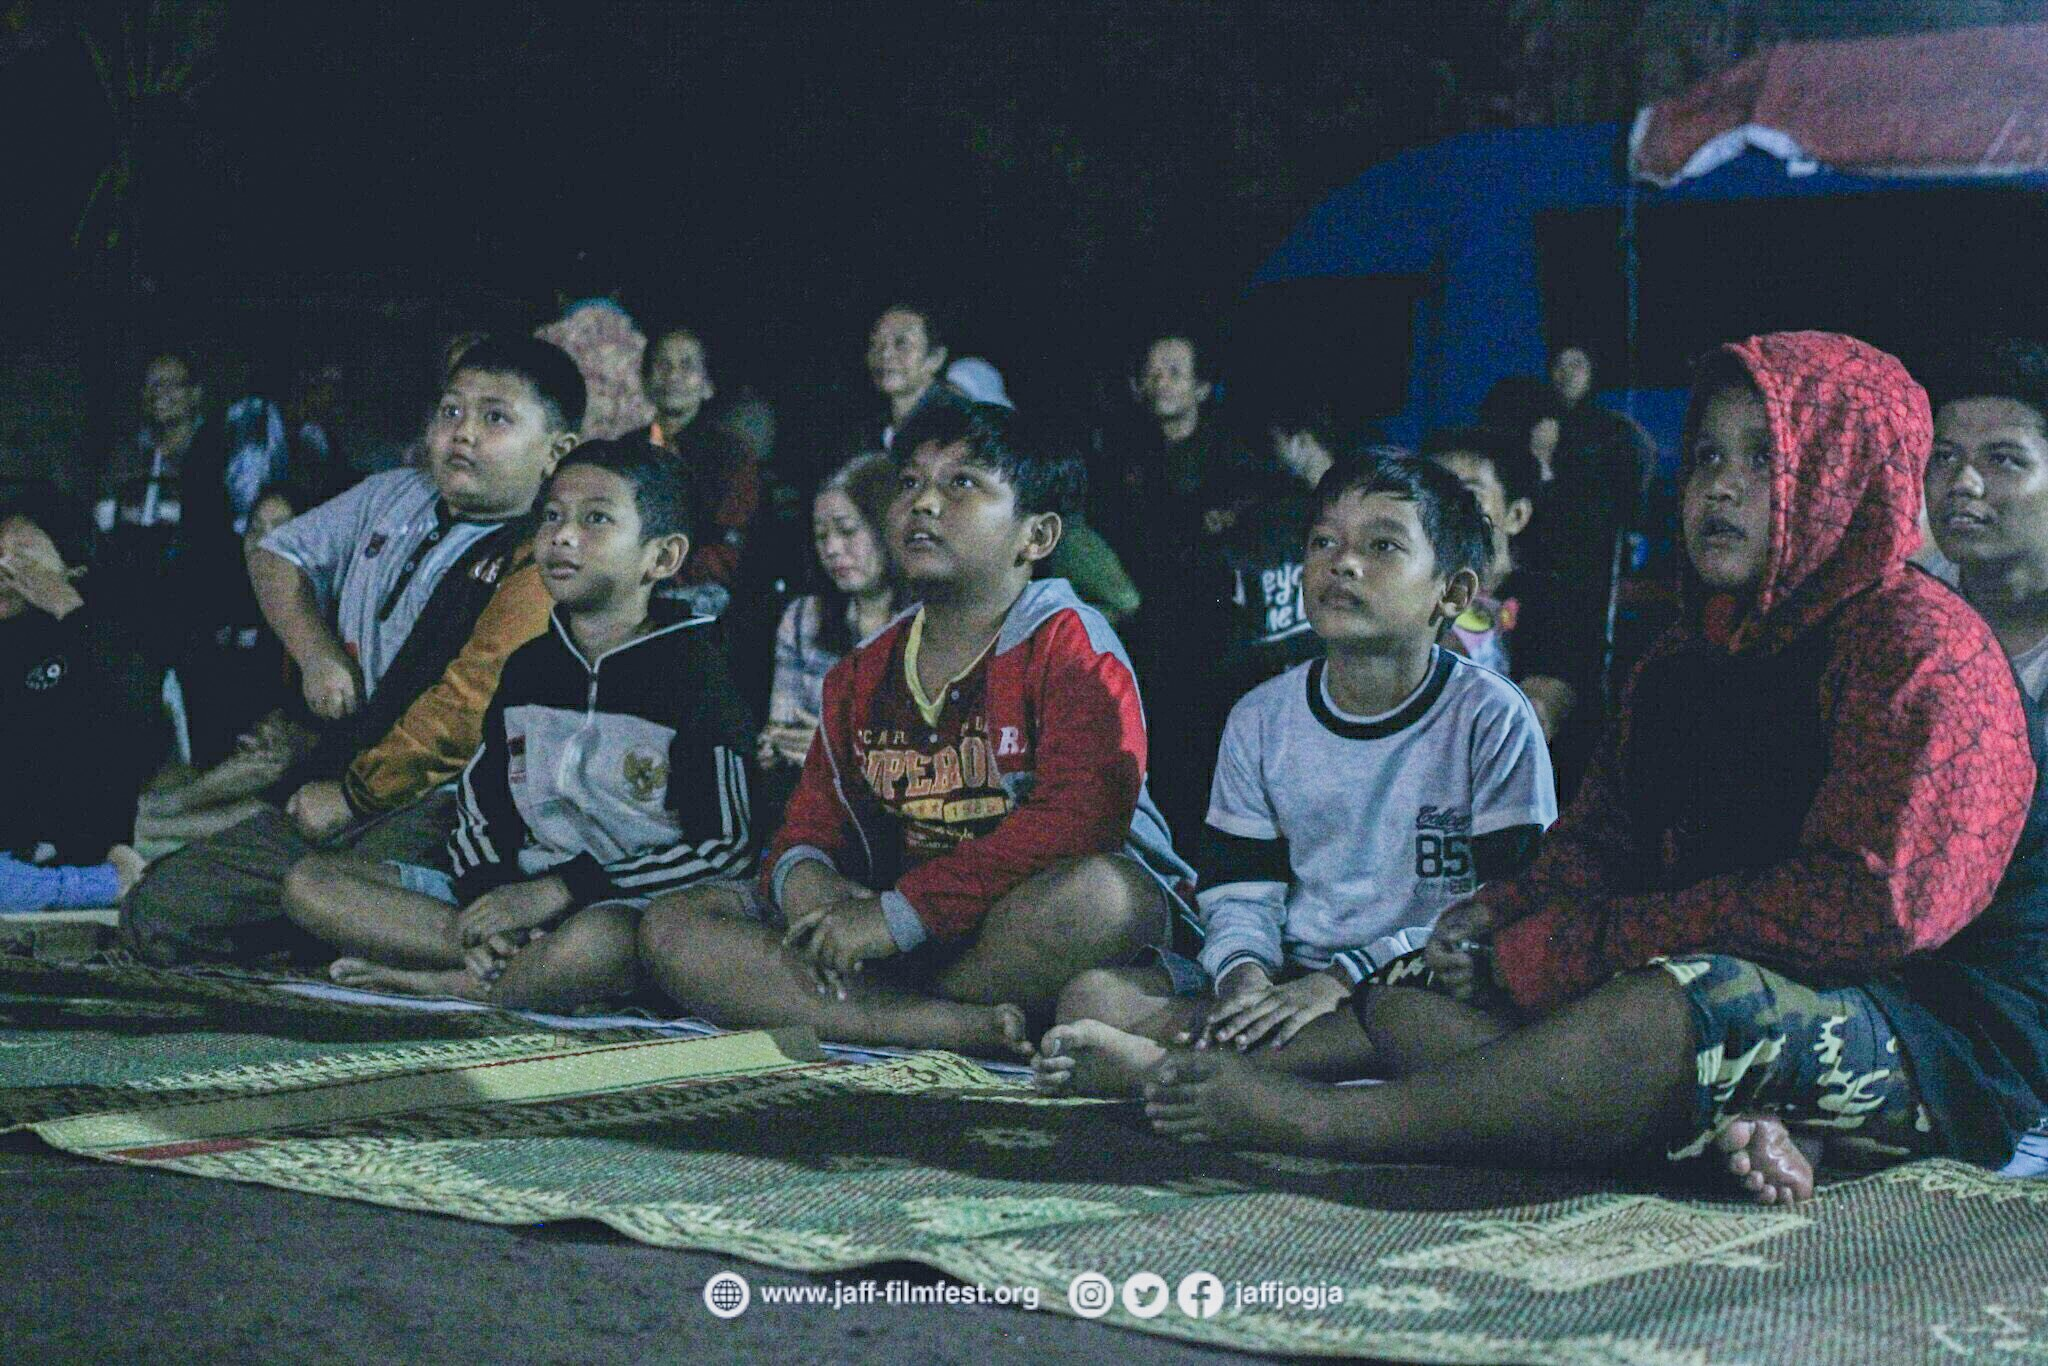 Open Air Cinema JAFF 14 'Revival', Sabtu (2